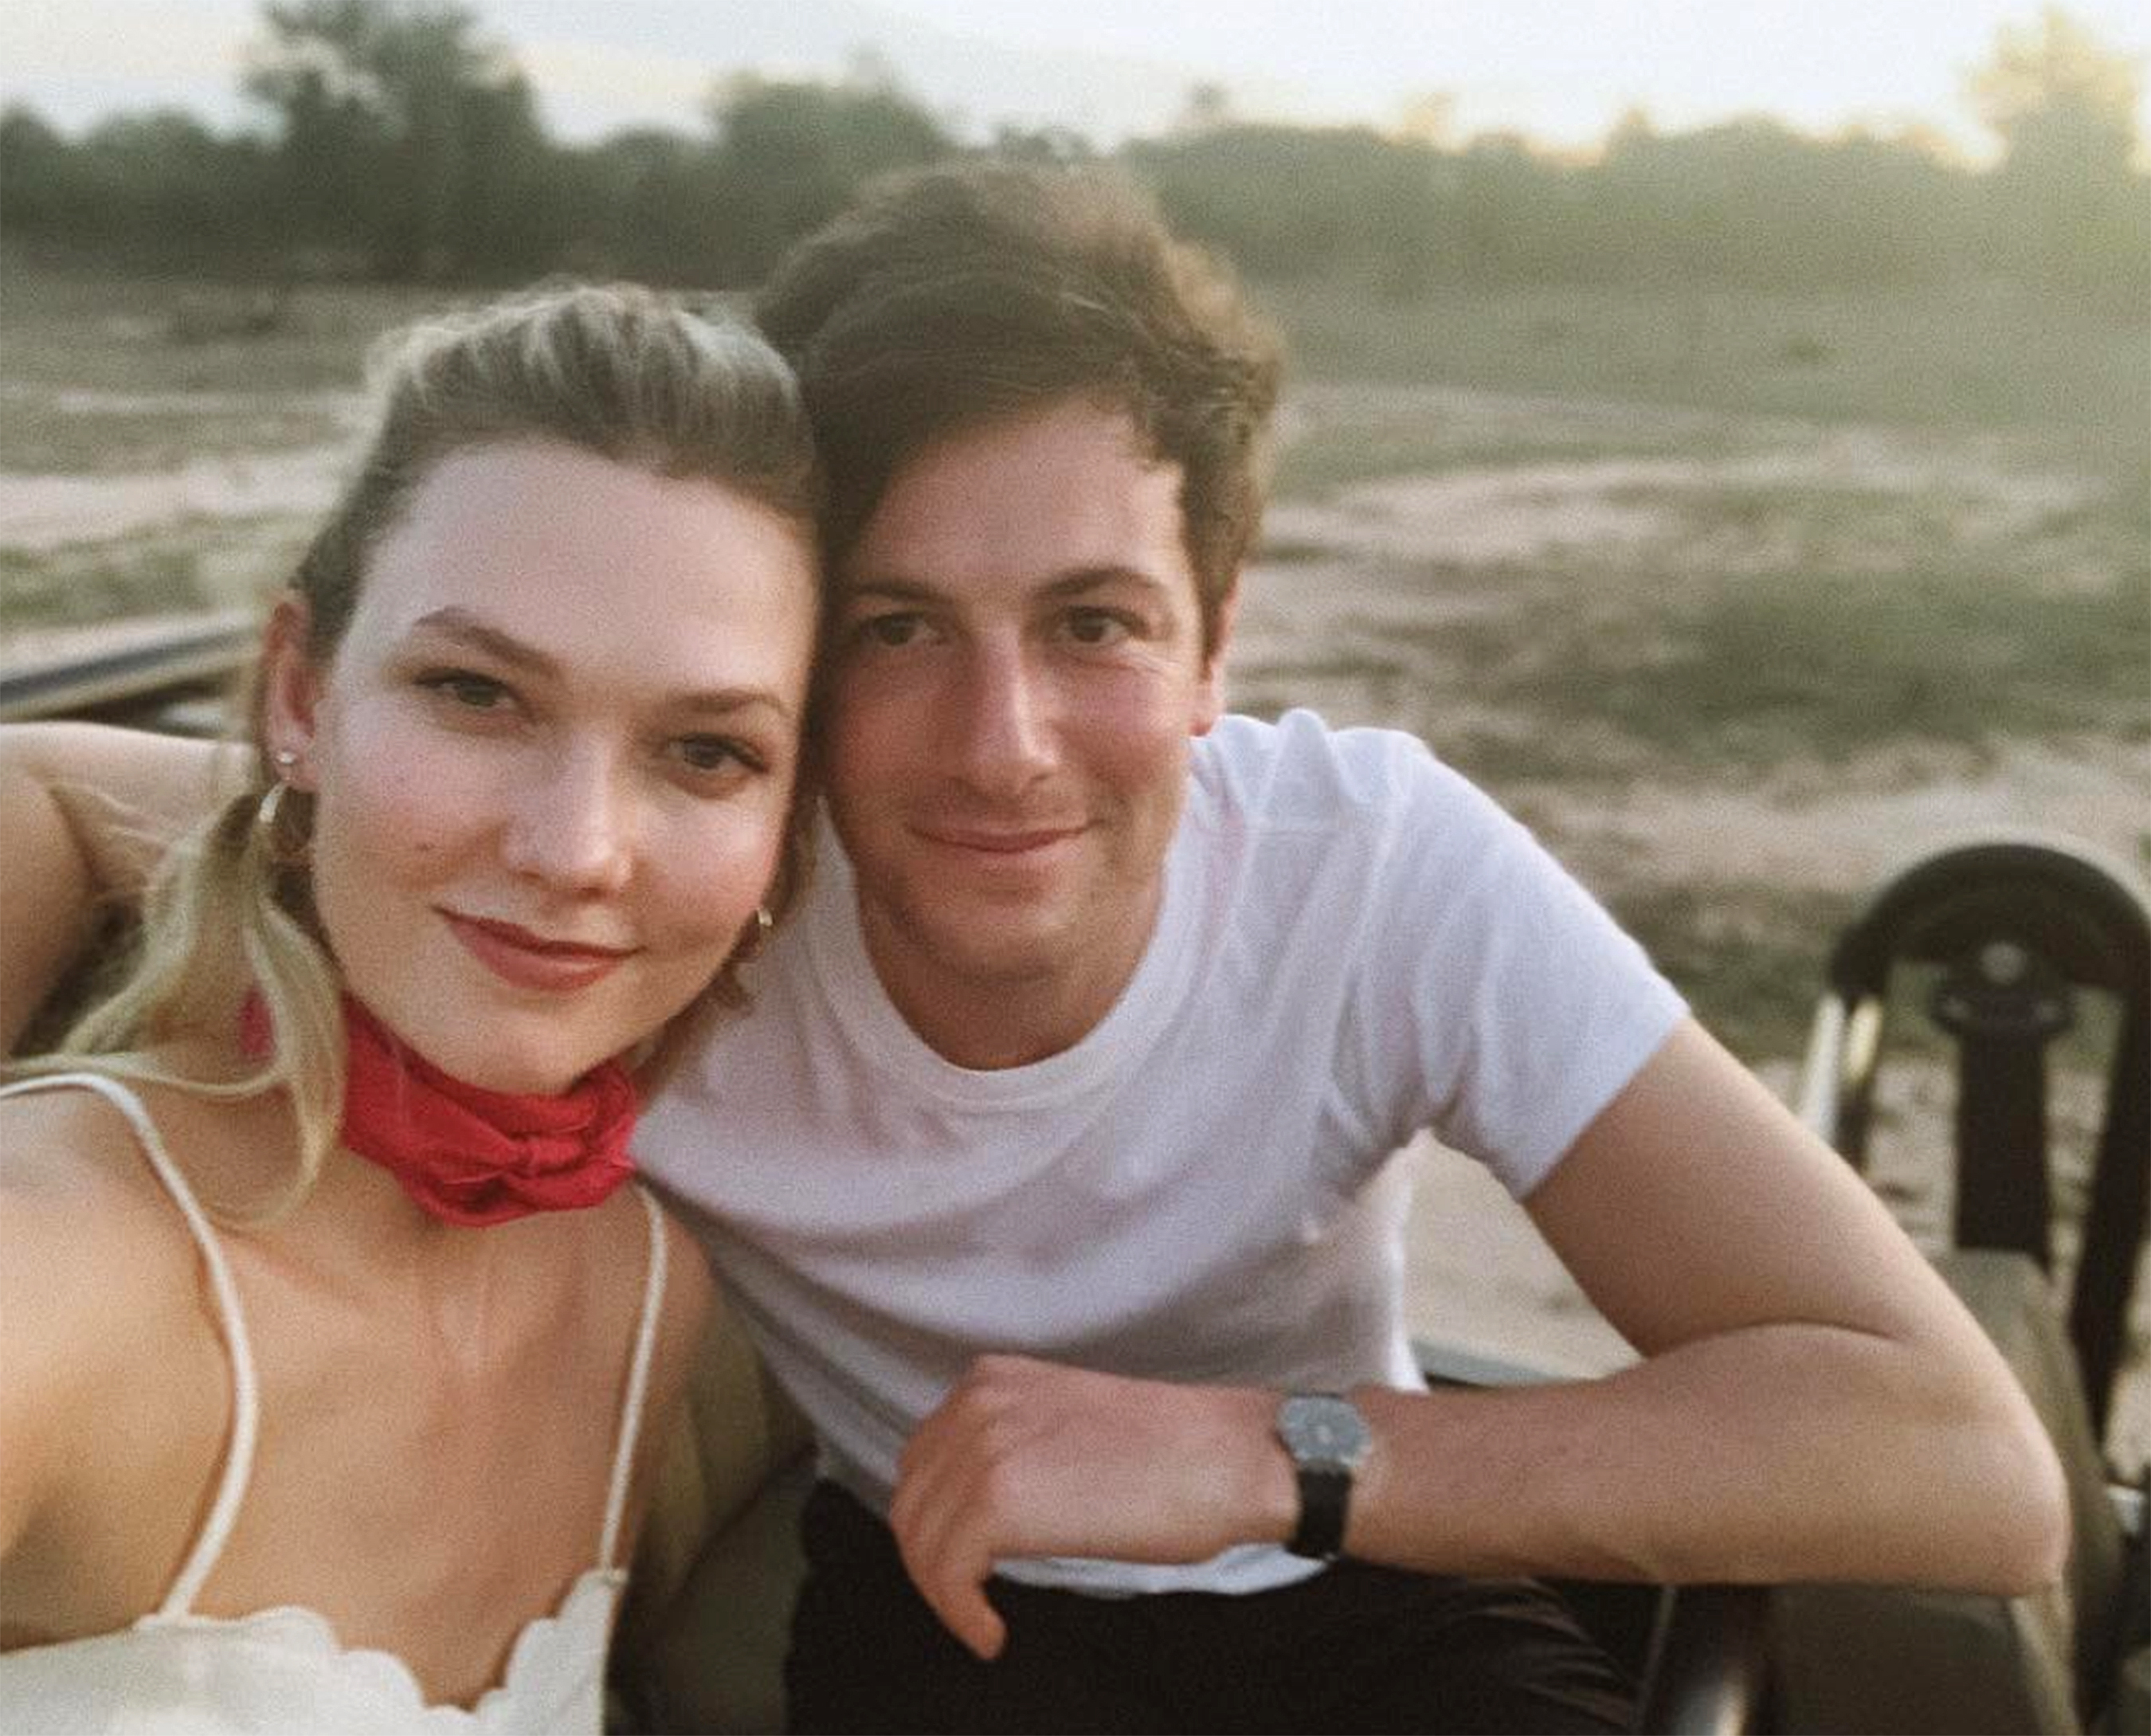 Newlyweds Karlie Kloss and Joshua Kushner Enjoy Christmas Honeymoon in South Africa 2 Months After Tying the Knot